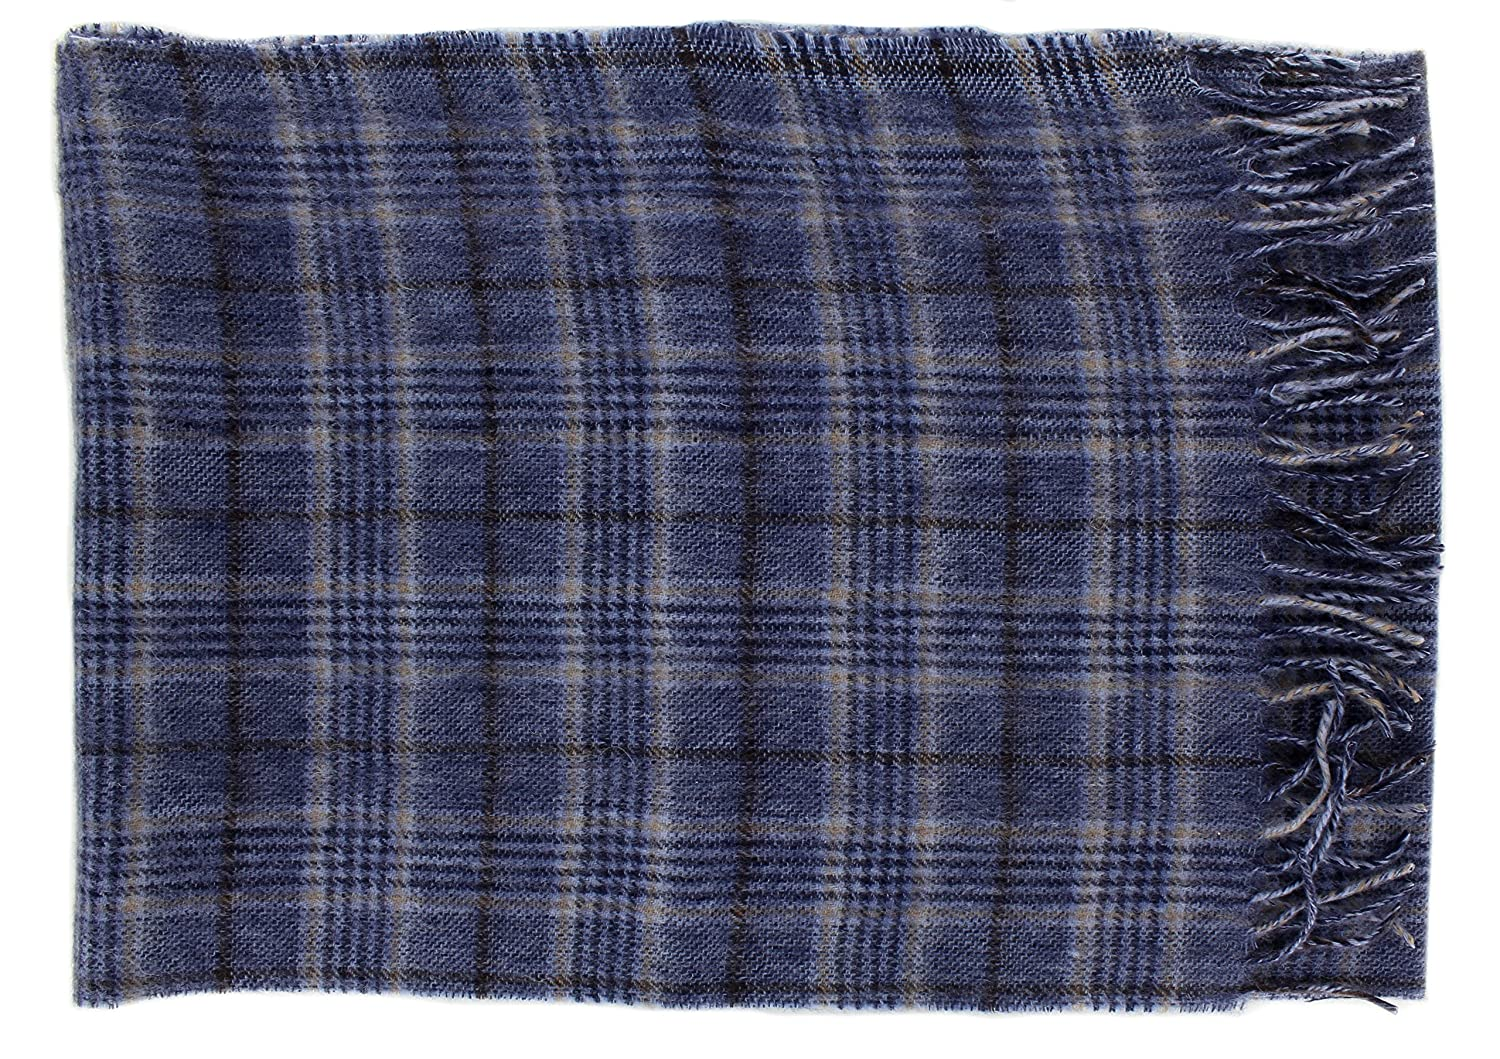 c9c0db43d6a55 Prince of Wales Check Wool Scarf in Blue and Light Brown: Amazon.co.uk:  Clothing